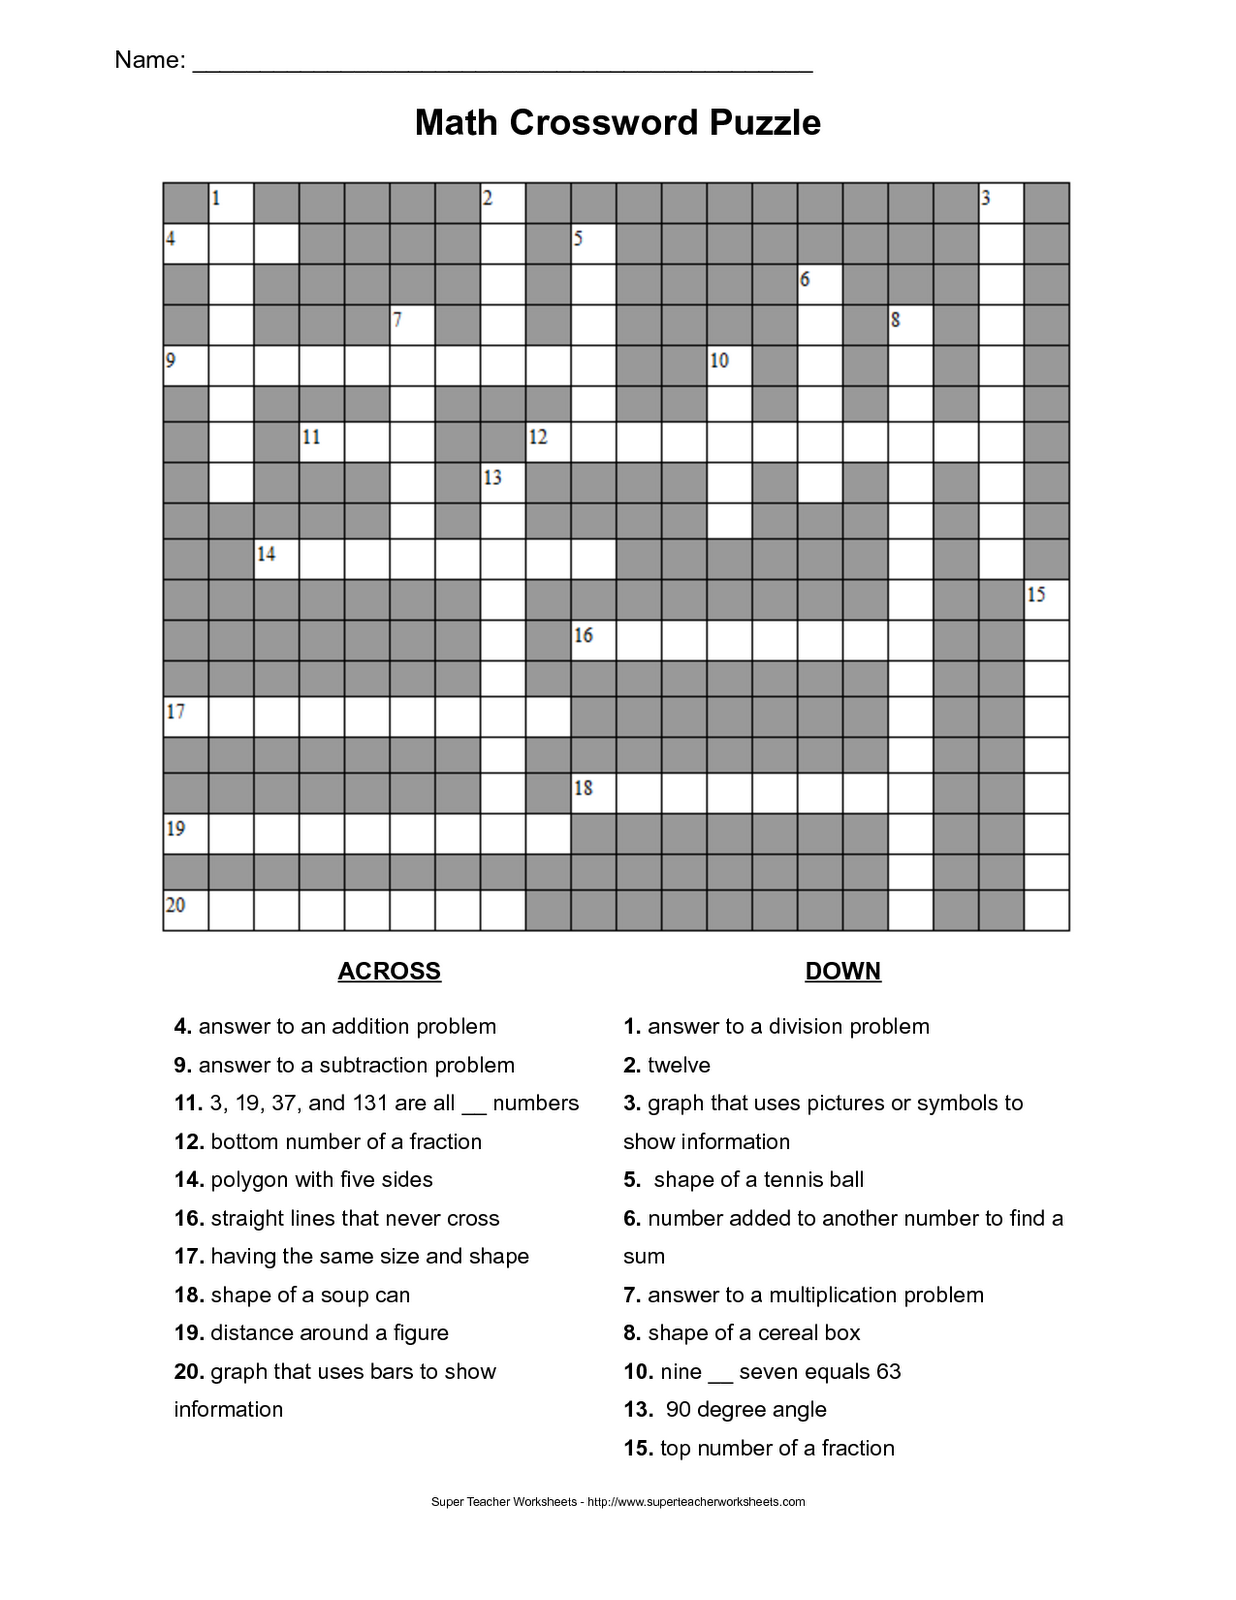 World Of Knowledge Math Crossword Puzzle